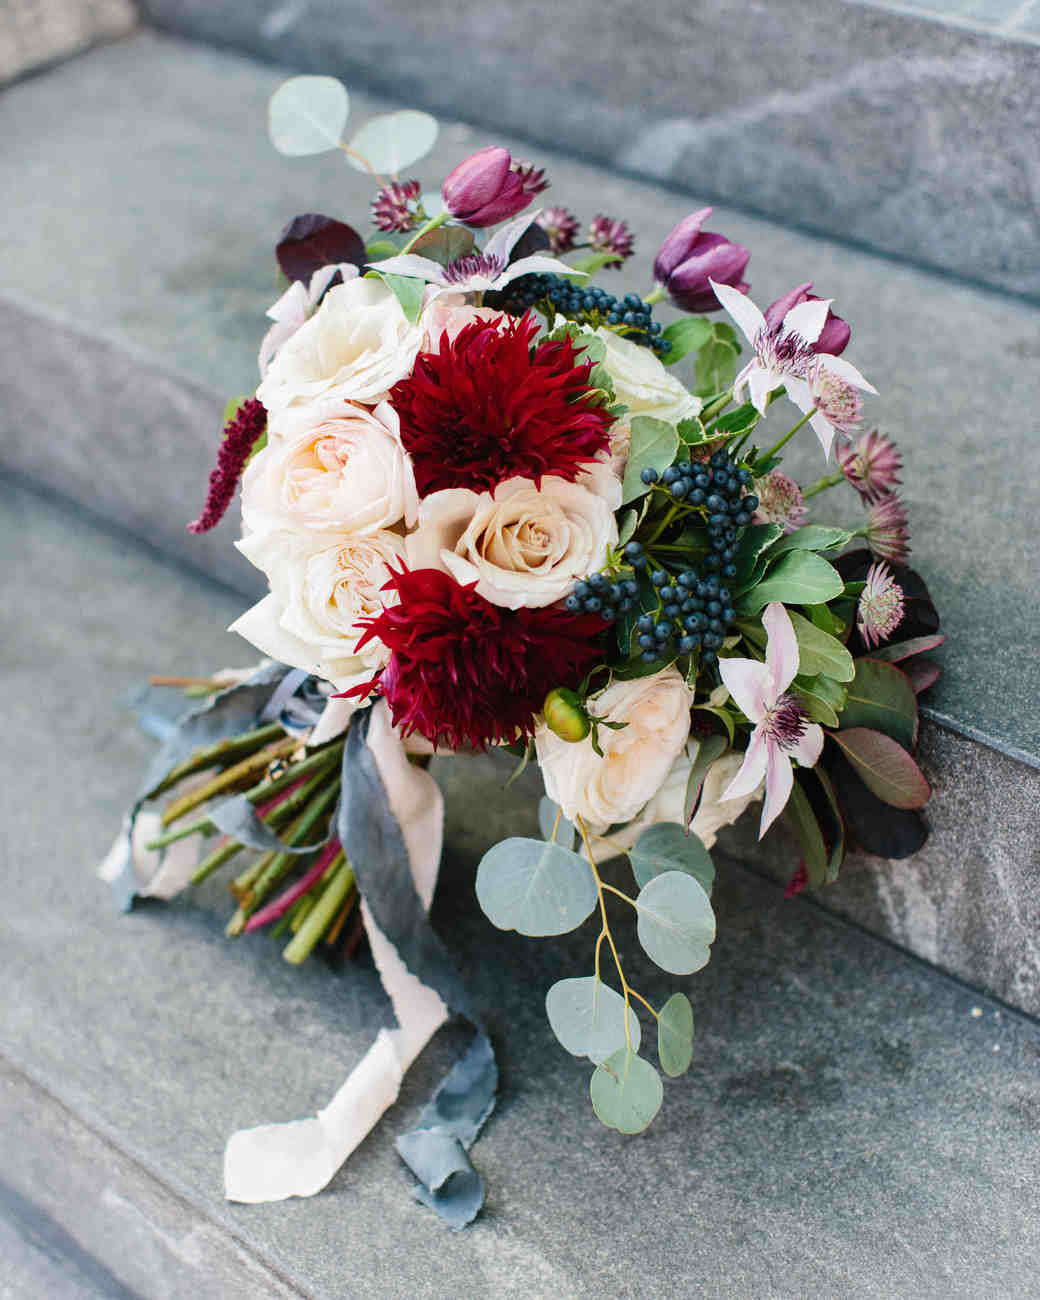 Ideas For Wedding Flowers: 22 Modern Wedding Bouquets